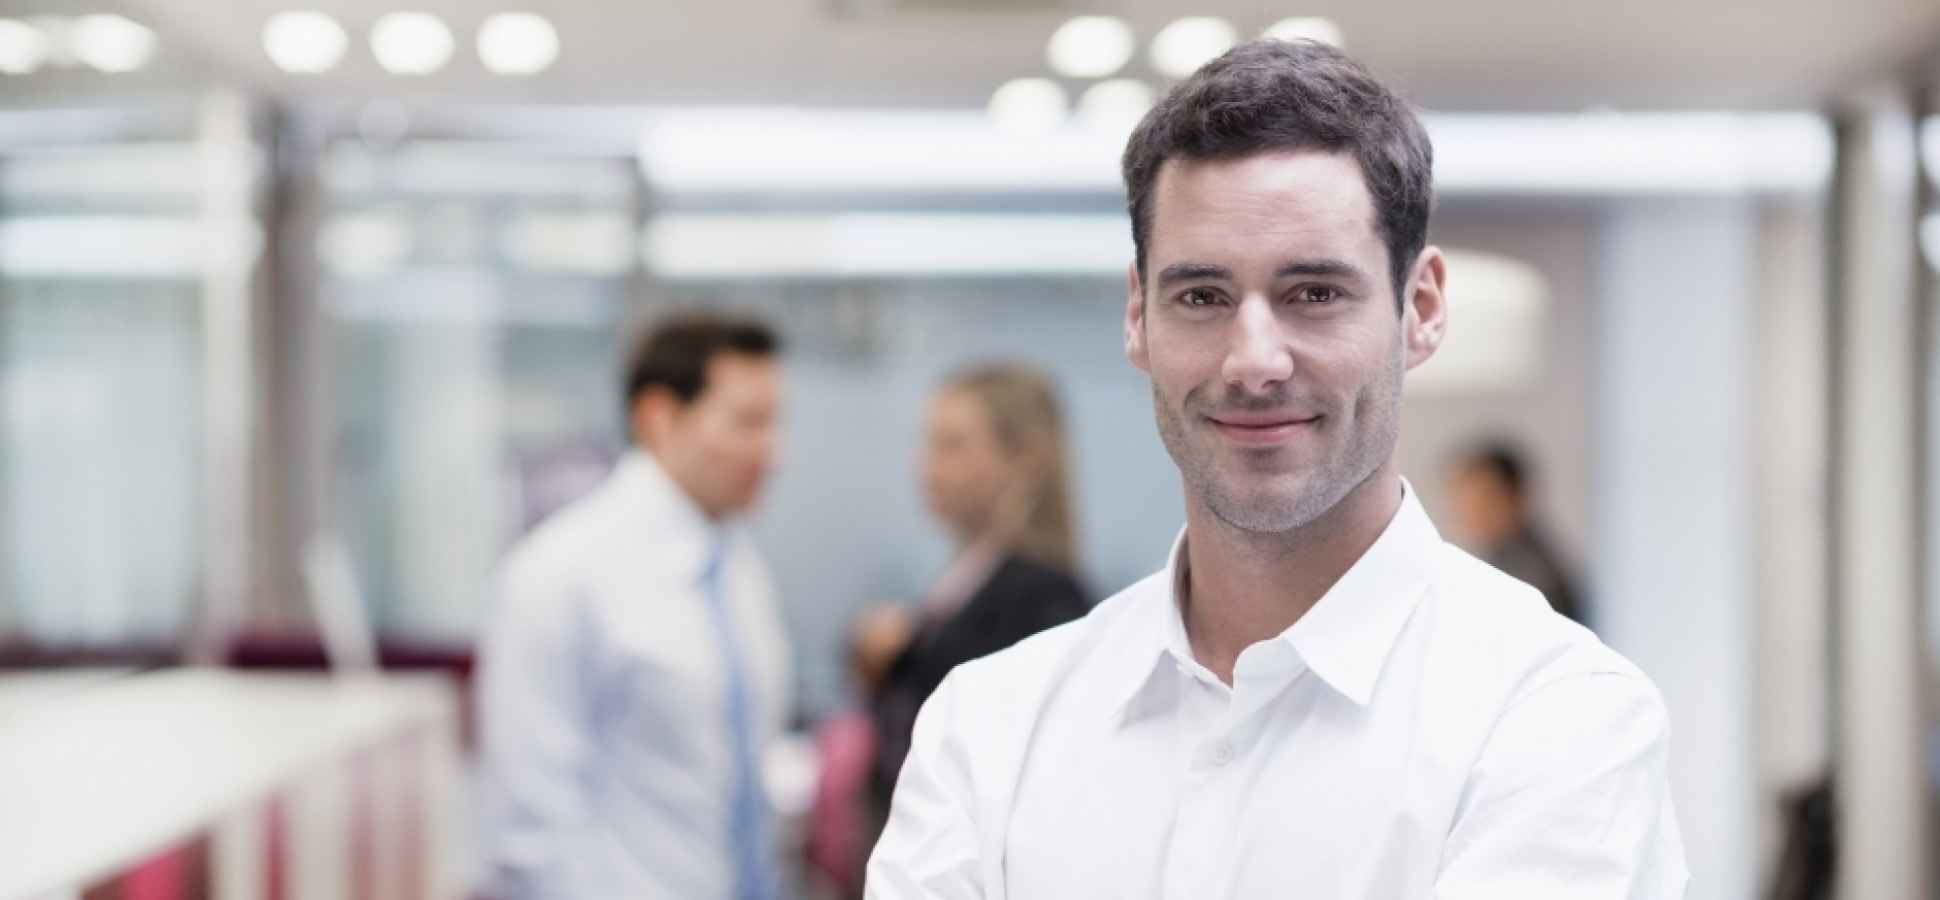 3 Things Exceptional Leaders Do to Stand Out From the Crowd